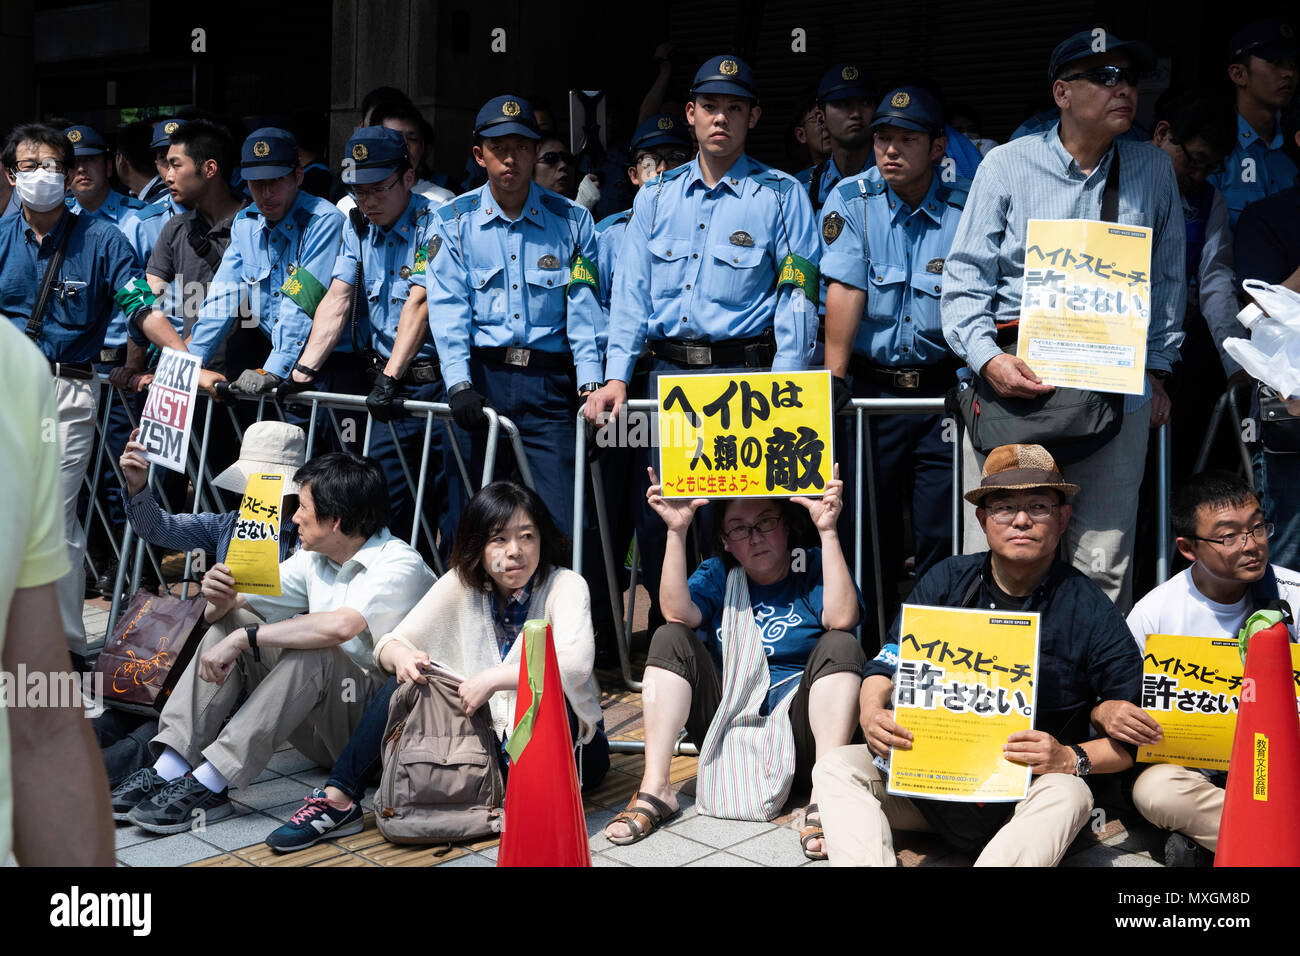 """KAWASAKI, JAPAN - JUNE 03: Protesters holding up signs, including one saying """"NO HATE & NO RACISM"""" gather in front of Educational Cultural Hall in Kawasaki, Kanagawa prefecture, Japan on June 3, 2018. The anti-racist group forcefully stop the nationalists attendees from entering the building for a planned meeting by a hate speech members in Kanto region following a scuffle with the police, nationalists and the protesters. (Photo: Richard Atrero de Guzman/Aflo) Stock Photo"""